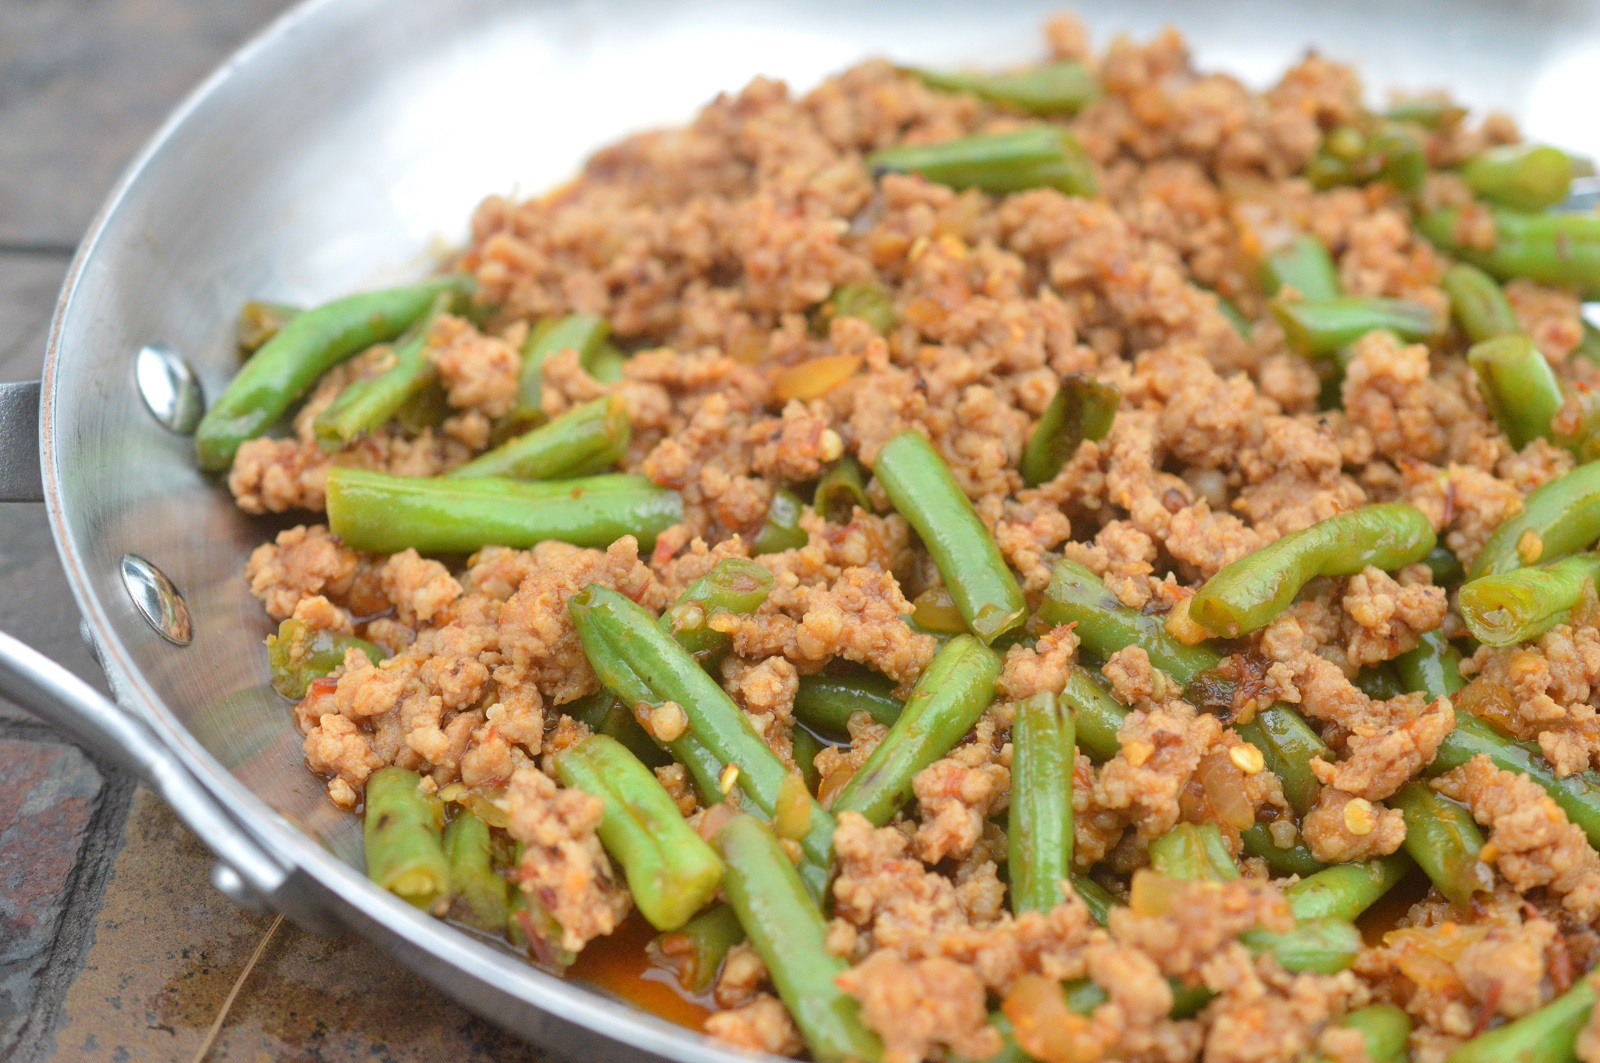 Easy Ground Meat & String Bean Asian Stir Fry